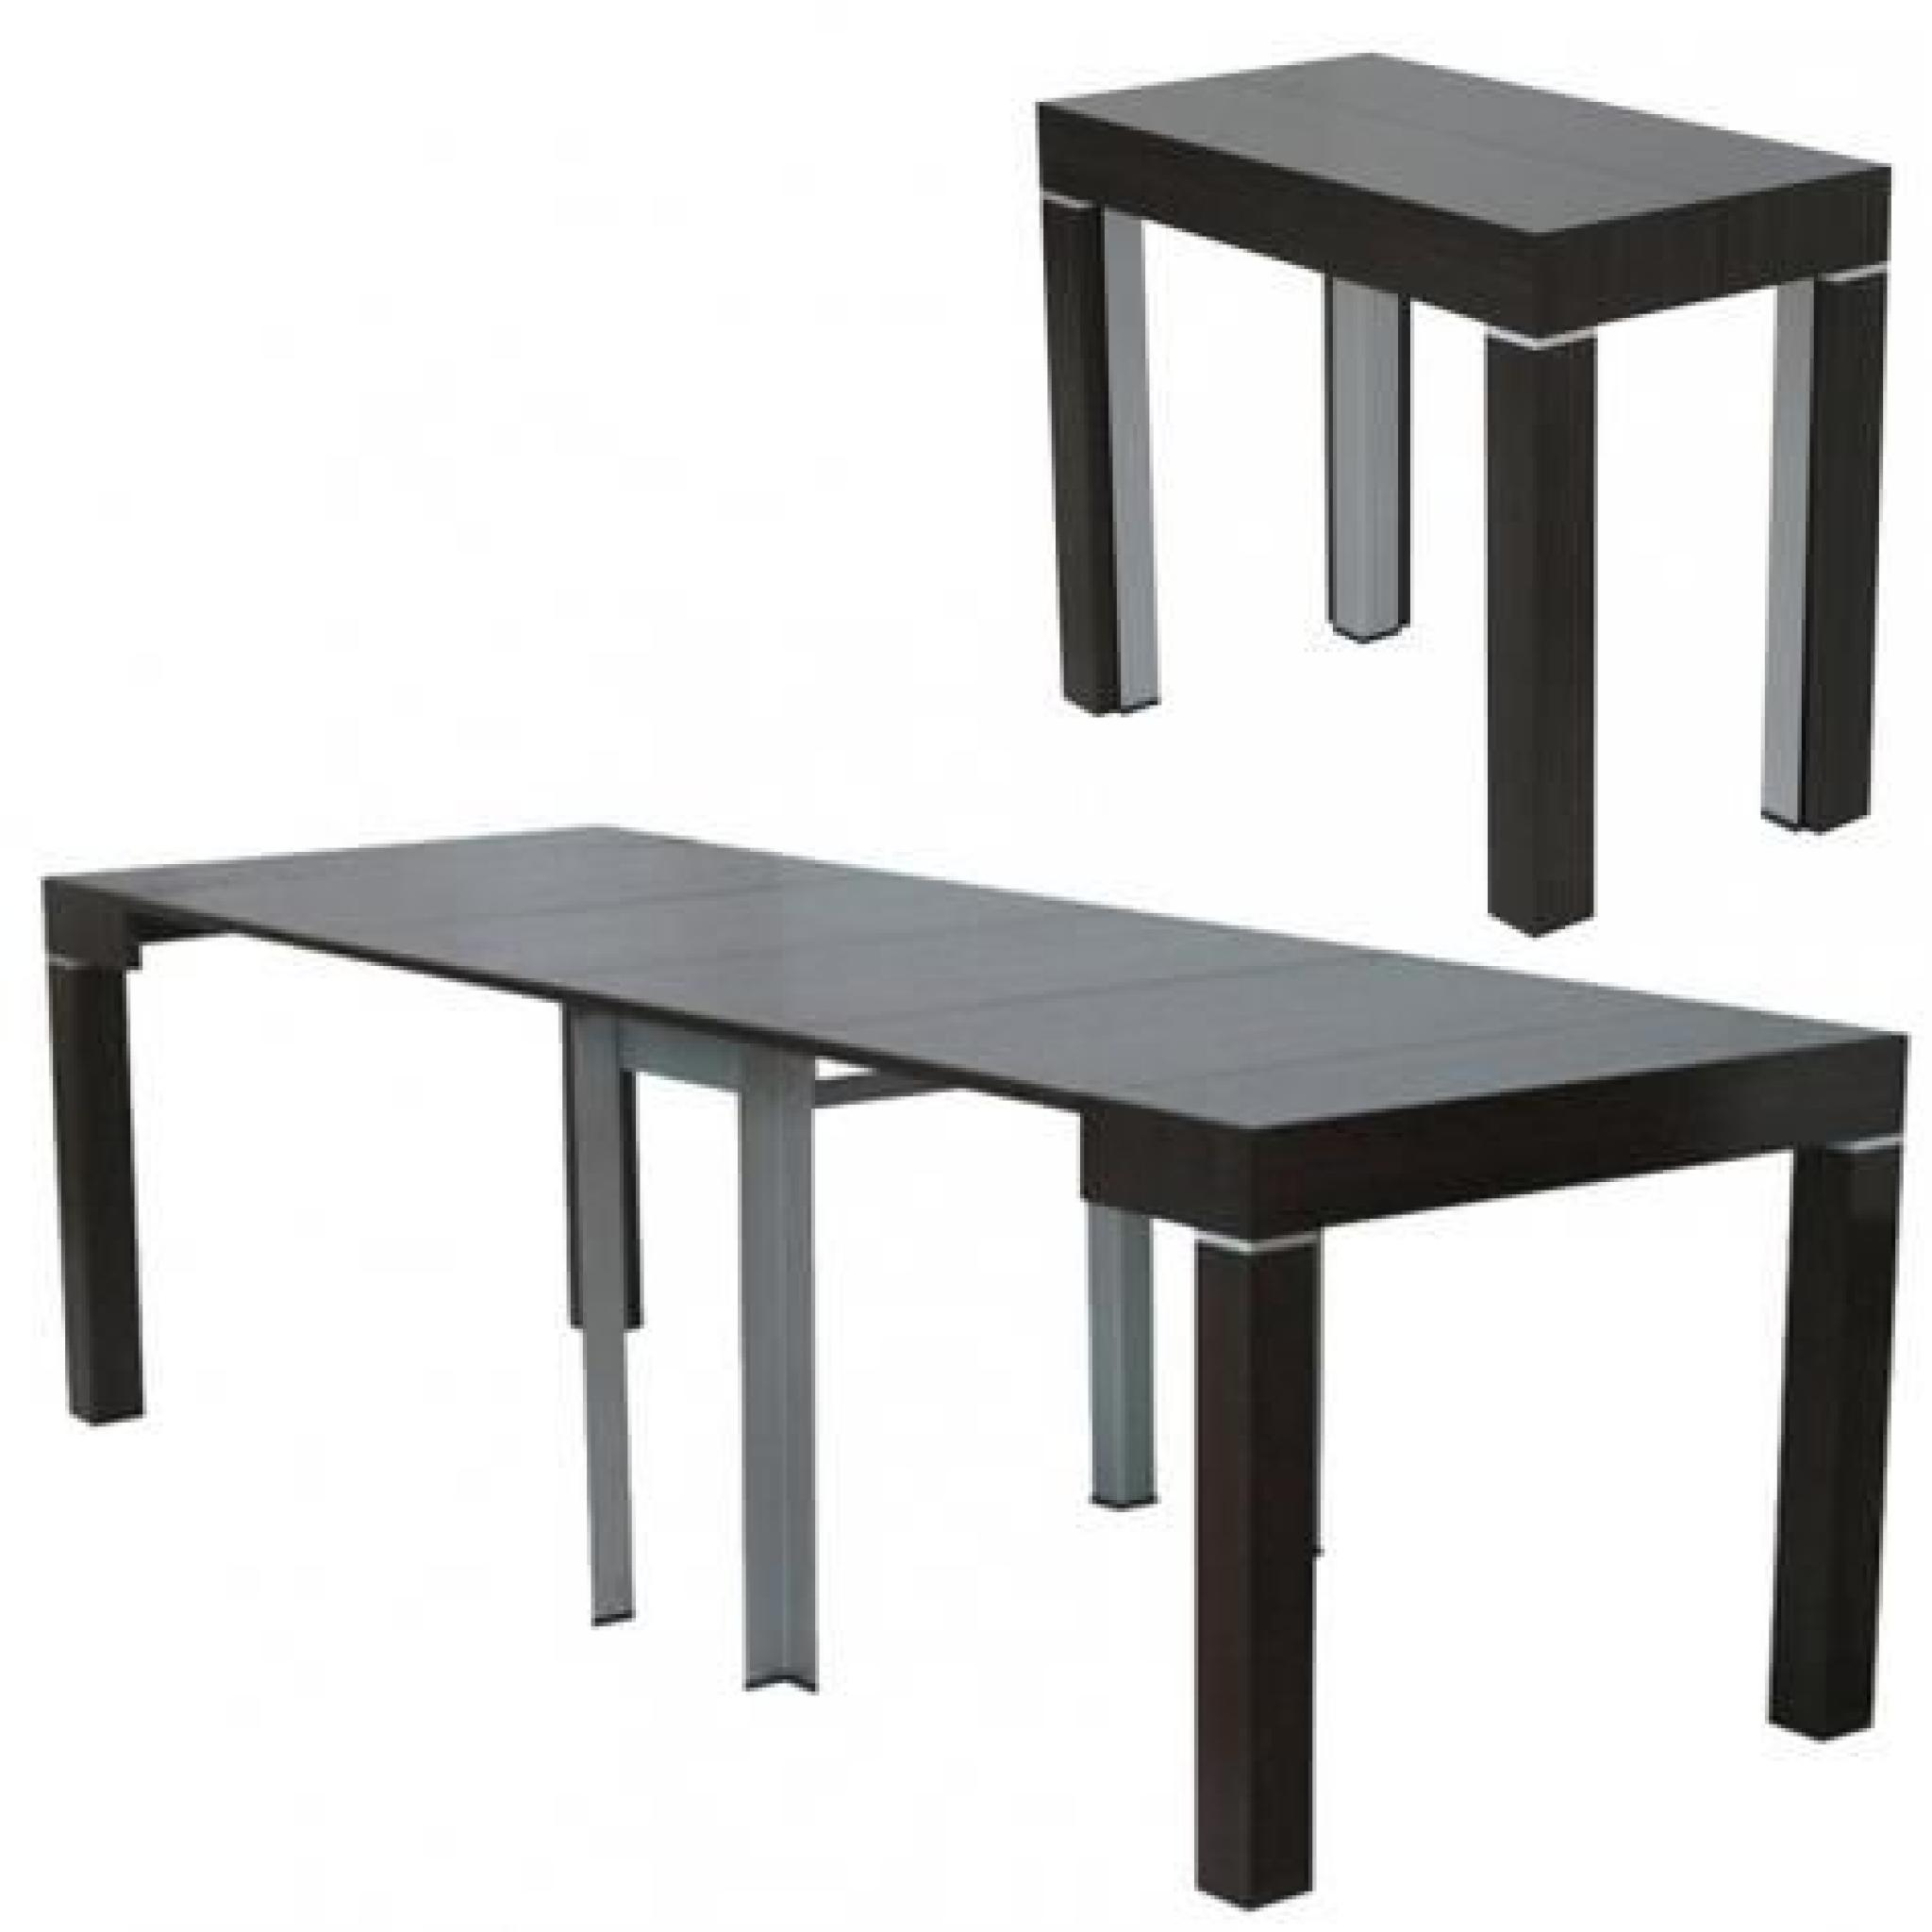 Table salle a manger wenge avec rallonge maison design for Table salle a manger design a rallonge